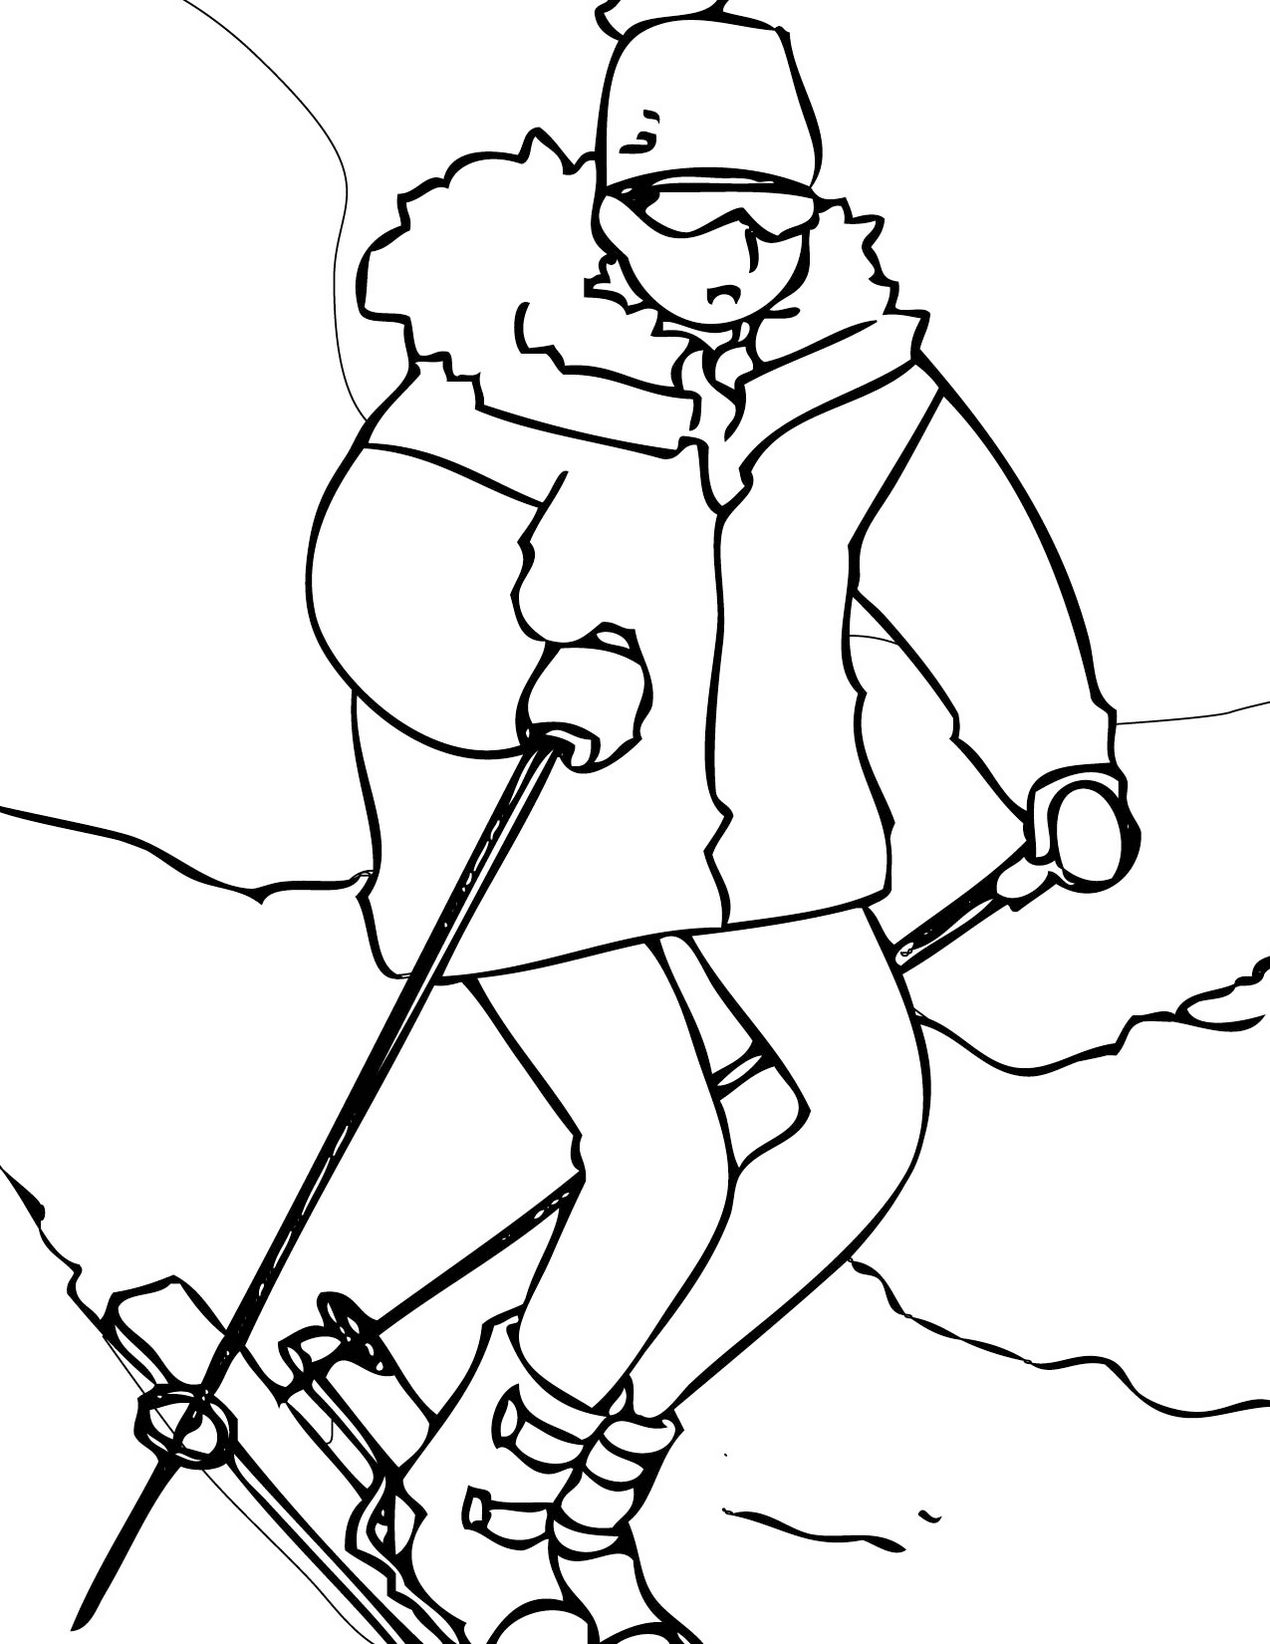 skiing_winter_colouring